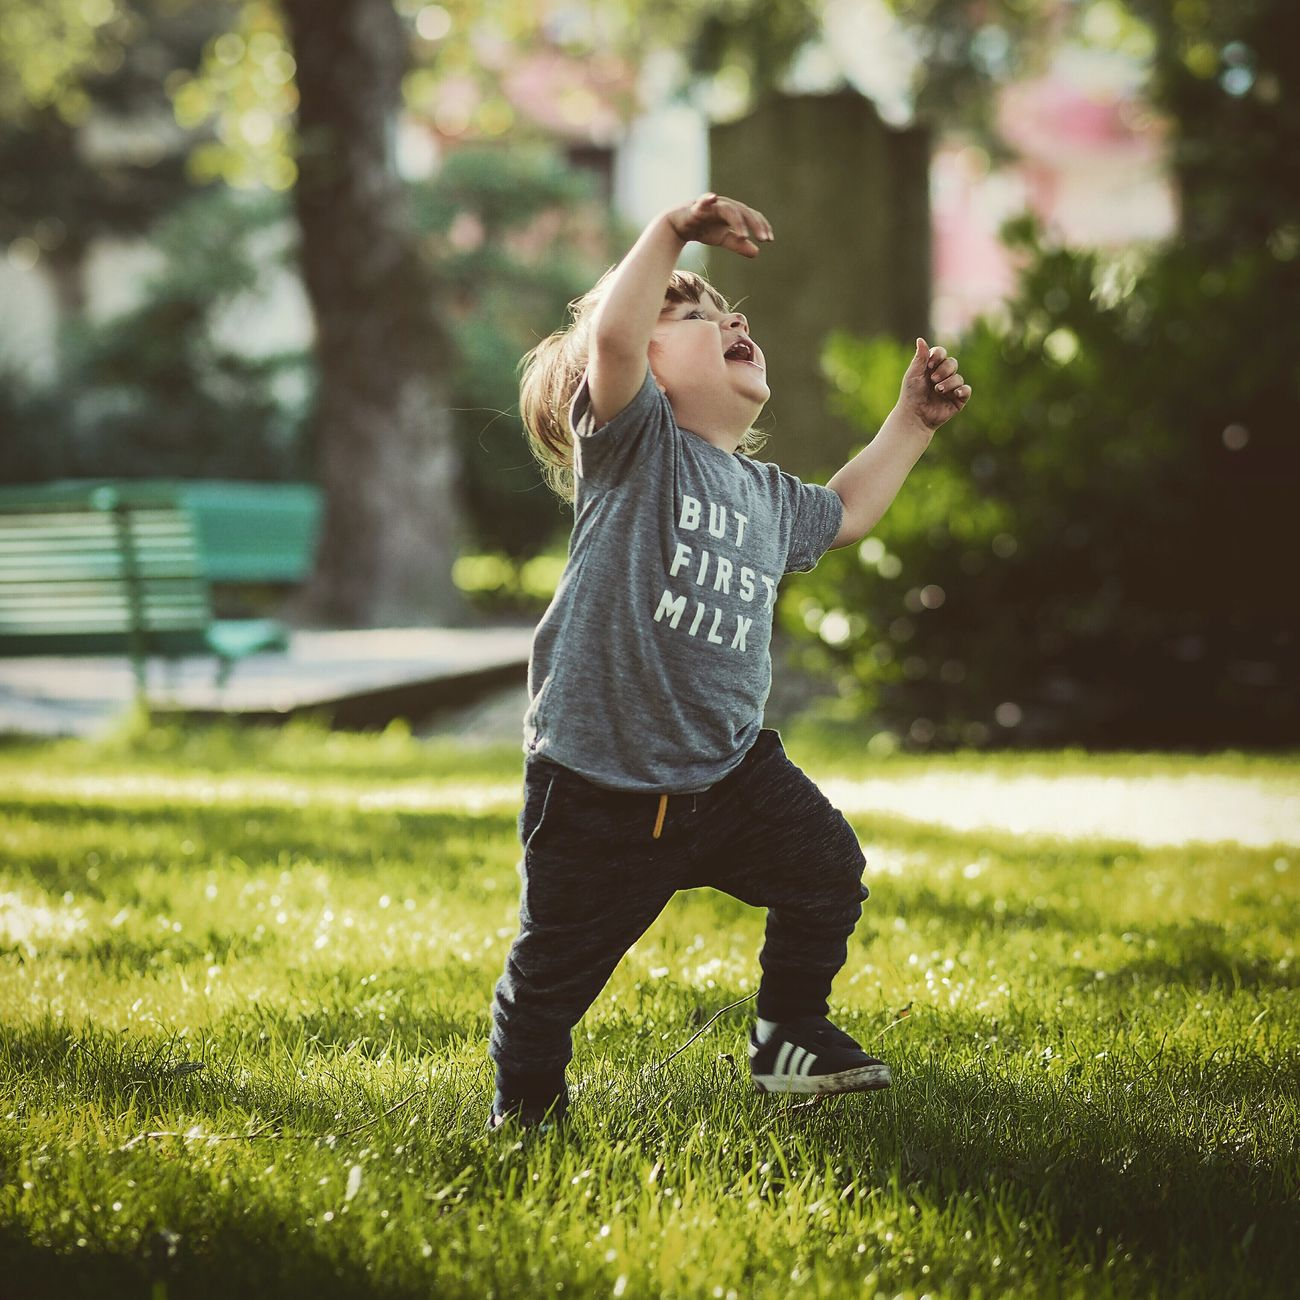 Sundance Enjoying Life Sunshine Kids Children Photography Outdoors Park Child Children Portrait Dance Dancer Dance Photography Olympus 75 1.8 Omd Olympus Mft